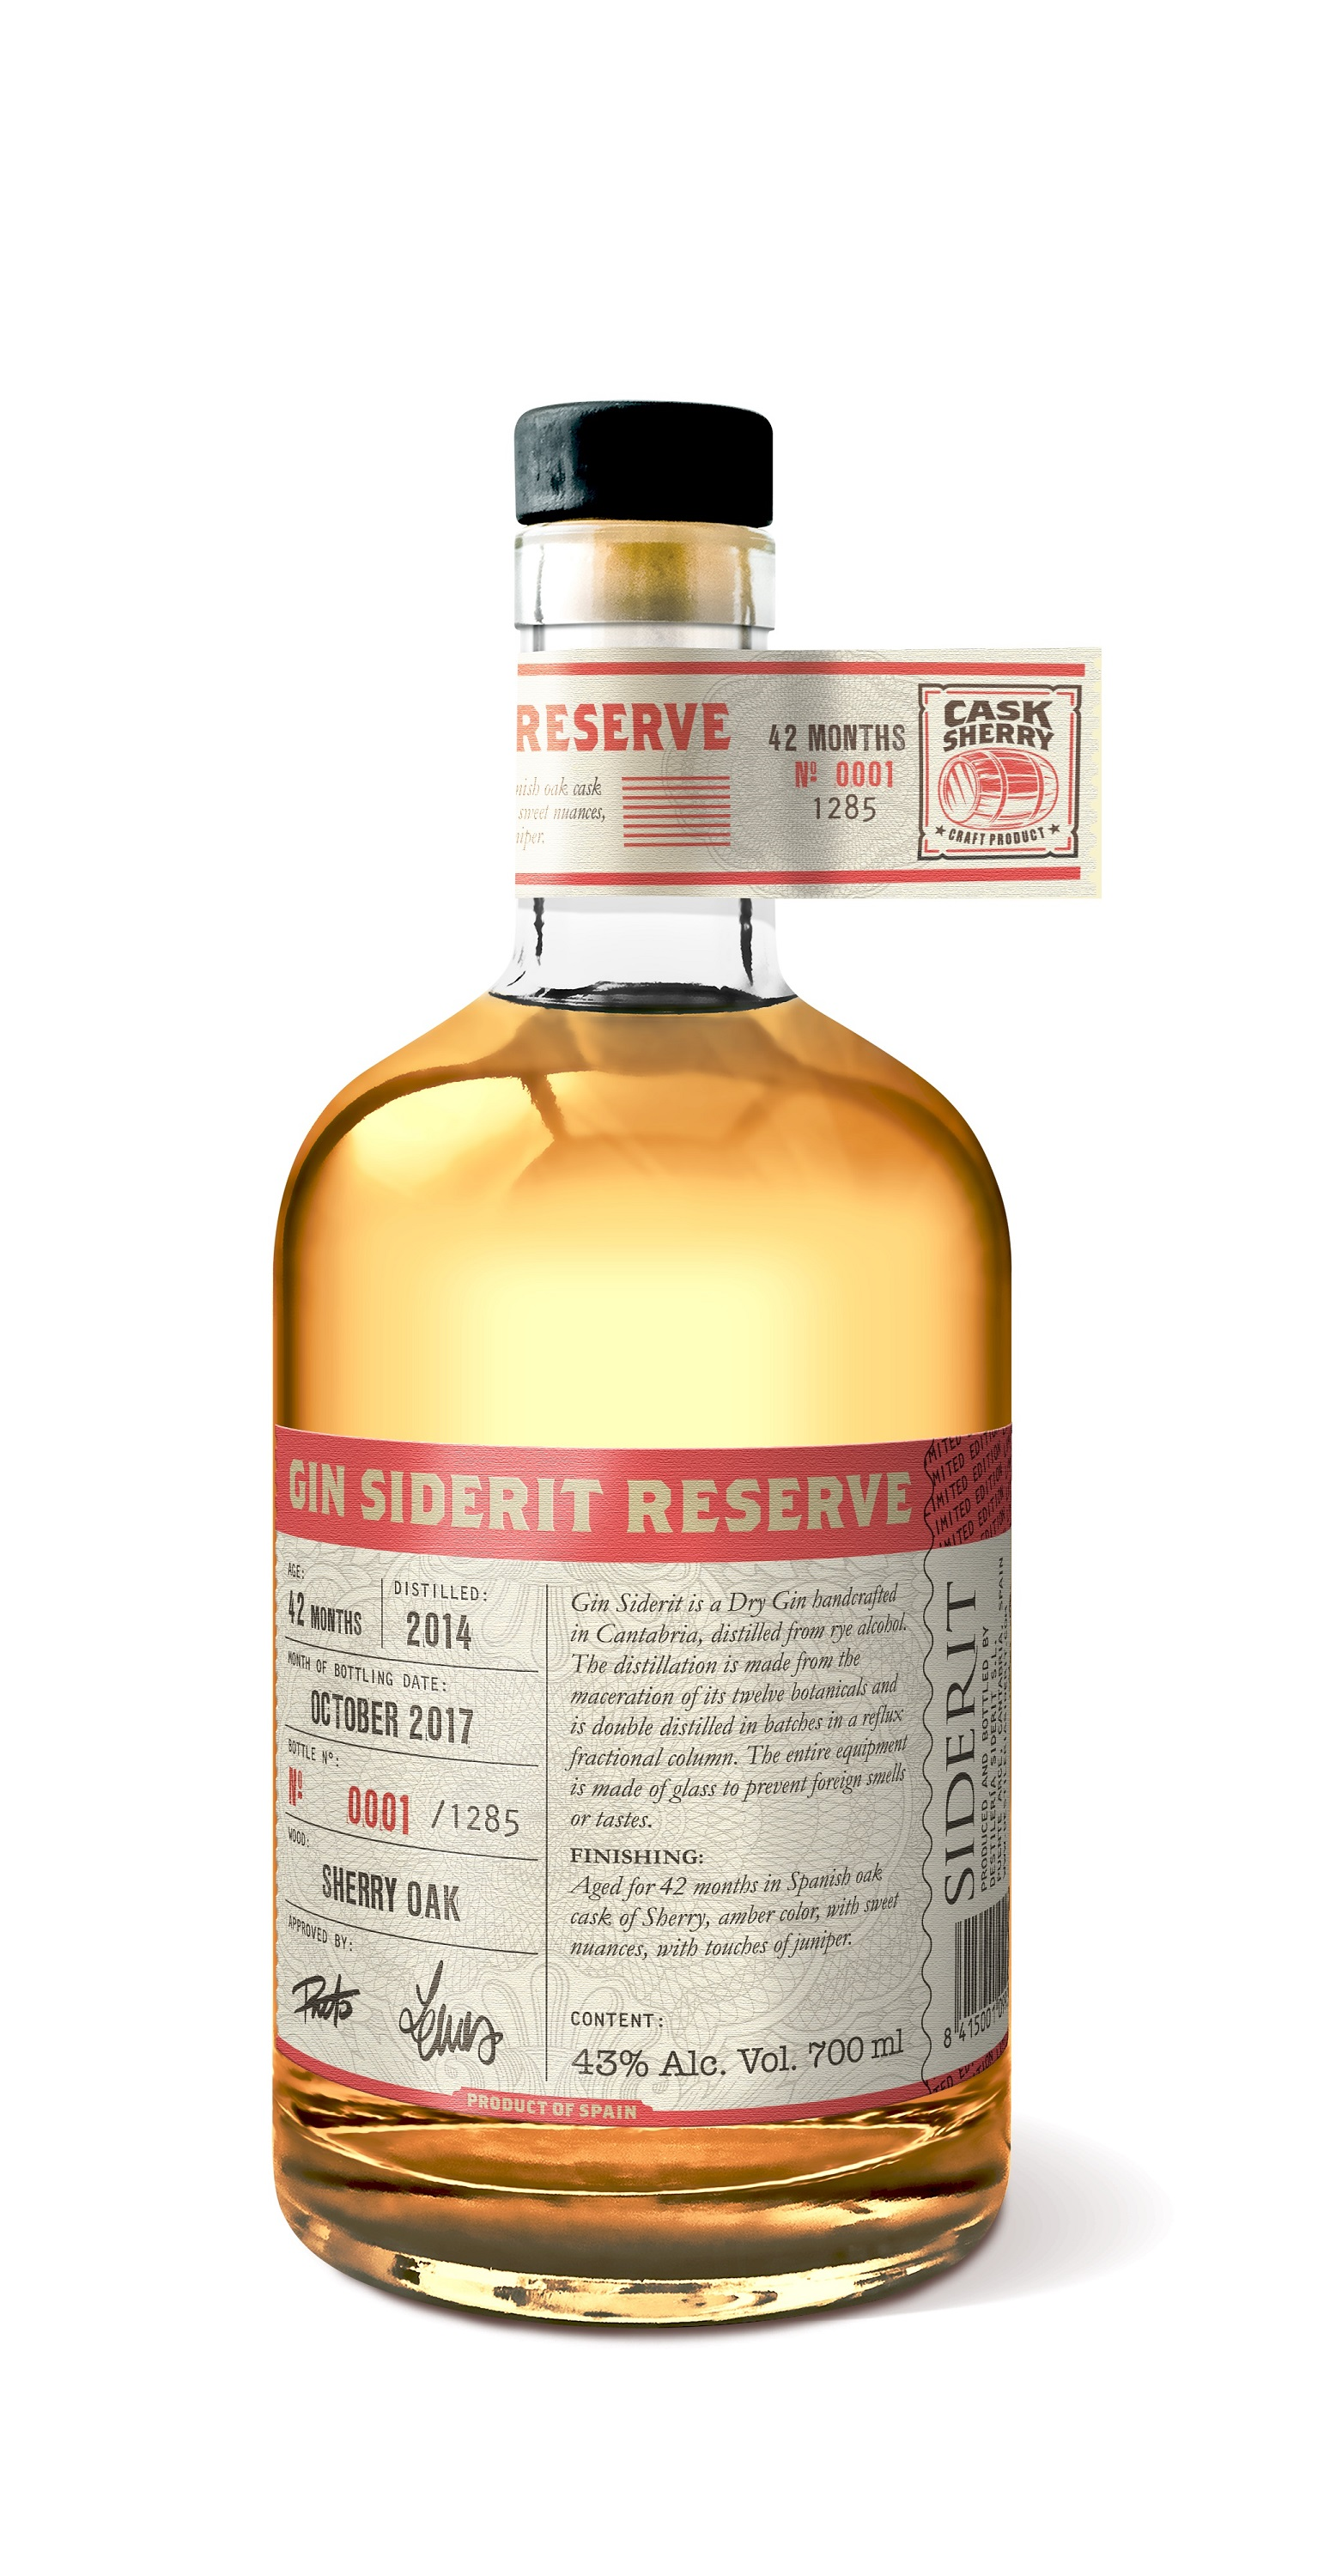 Gin Reserve Siderit aged in Sherry Oak Cask, 43% Alc, 700ml